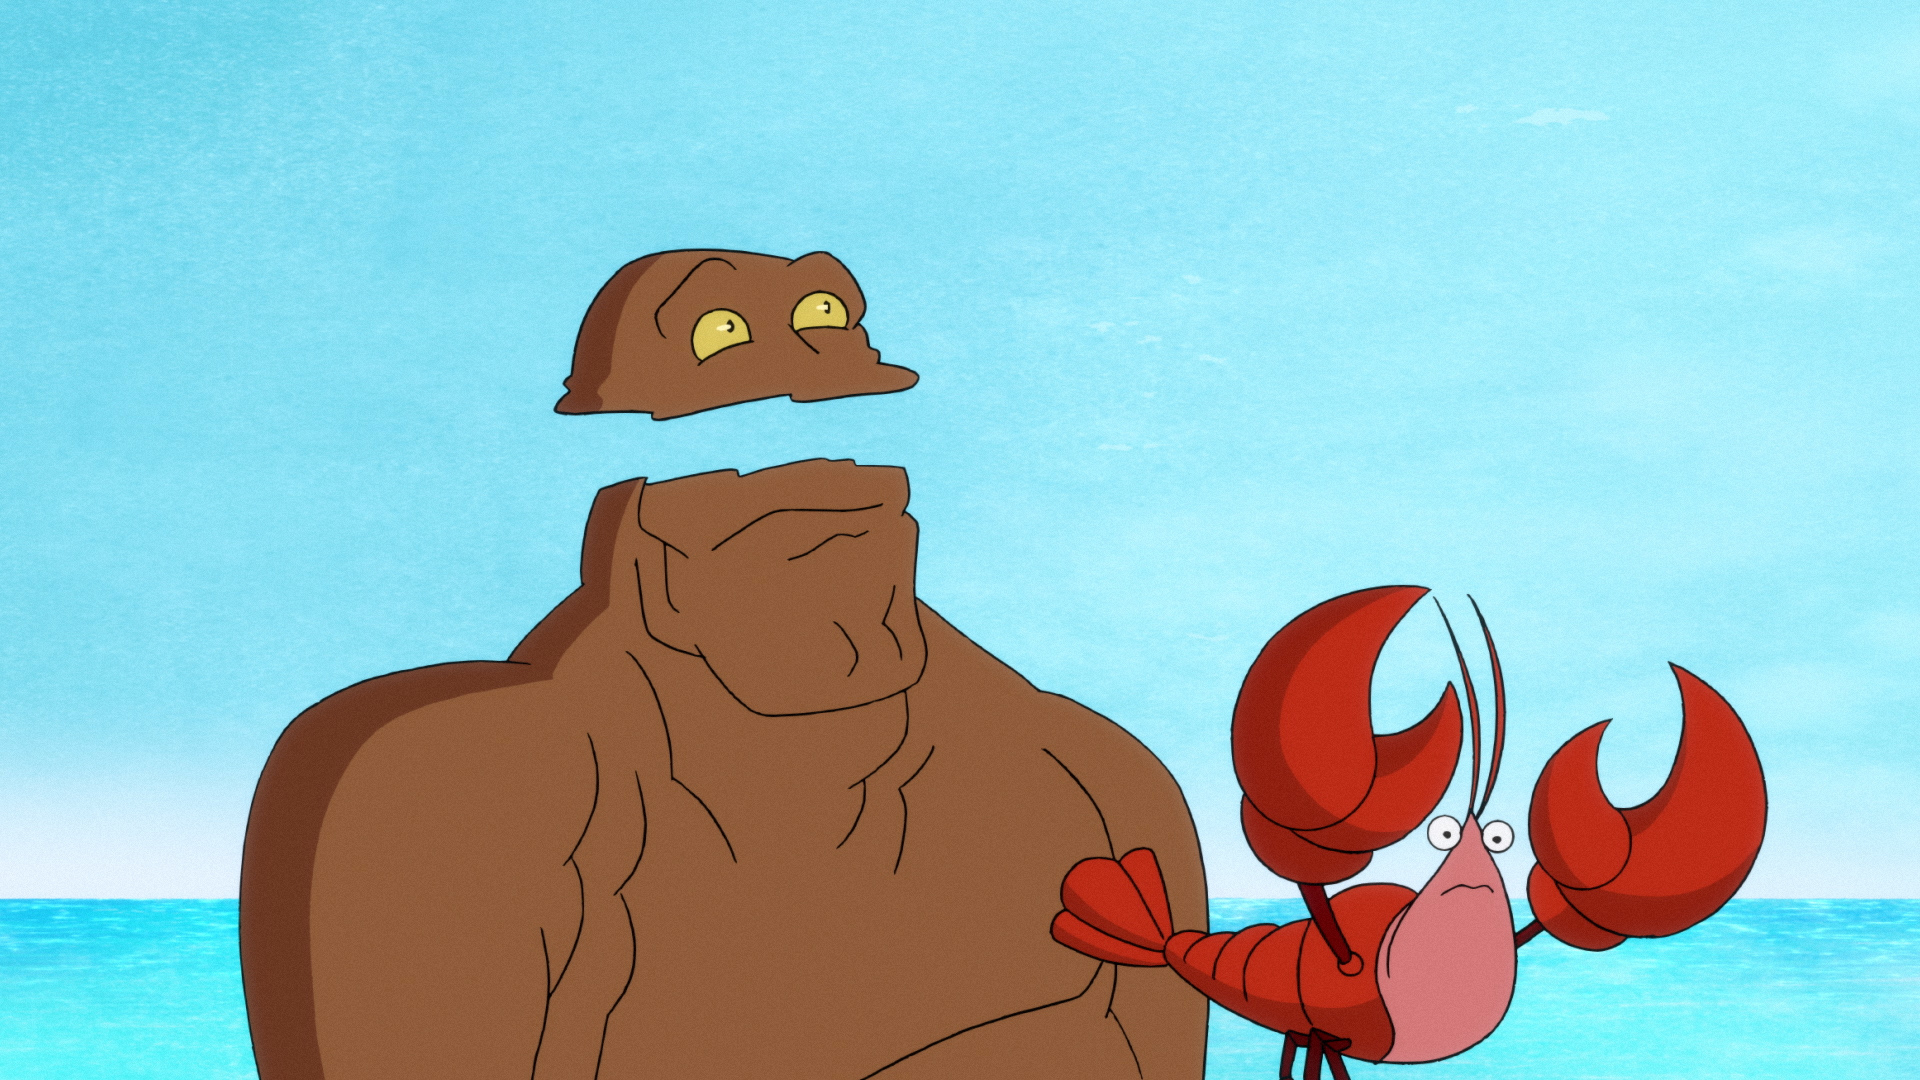 Clayman has a bit of a run-in with a lobster, 'Harley Quinn'